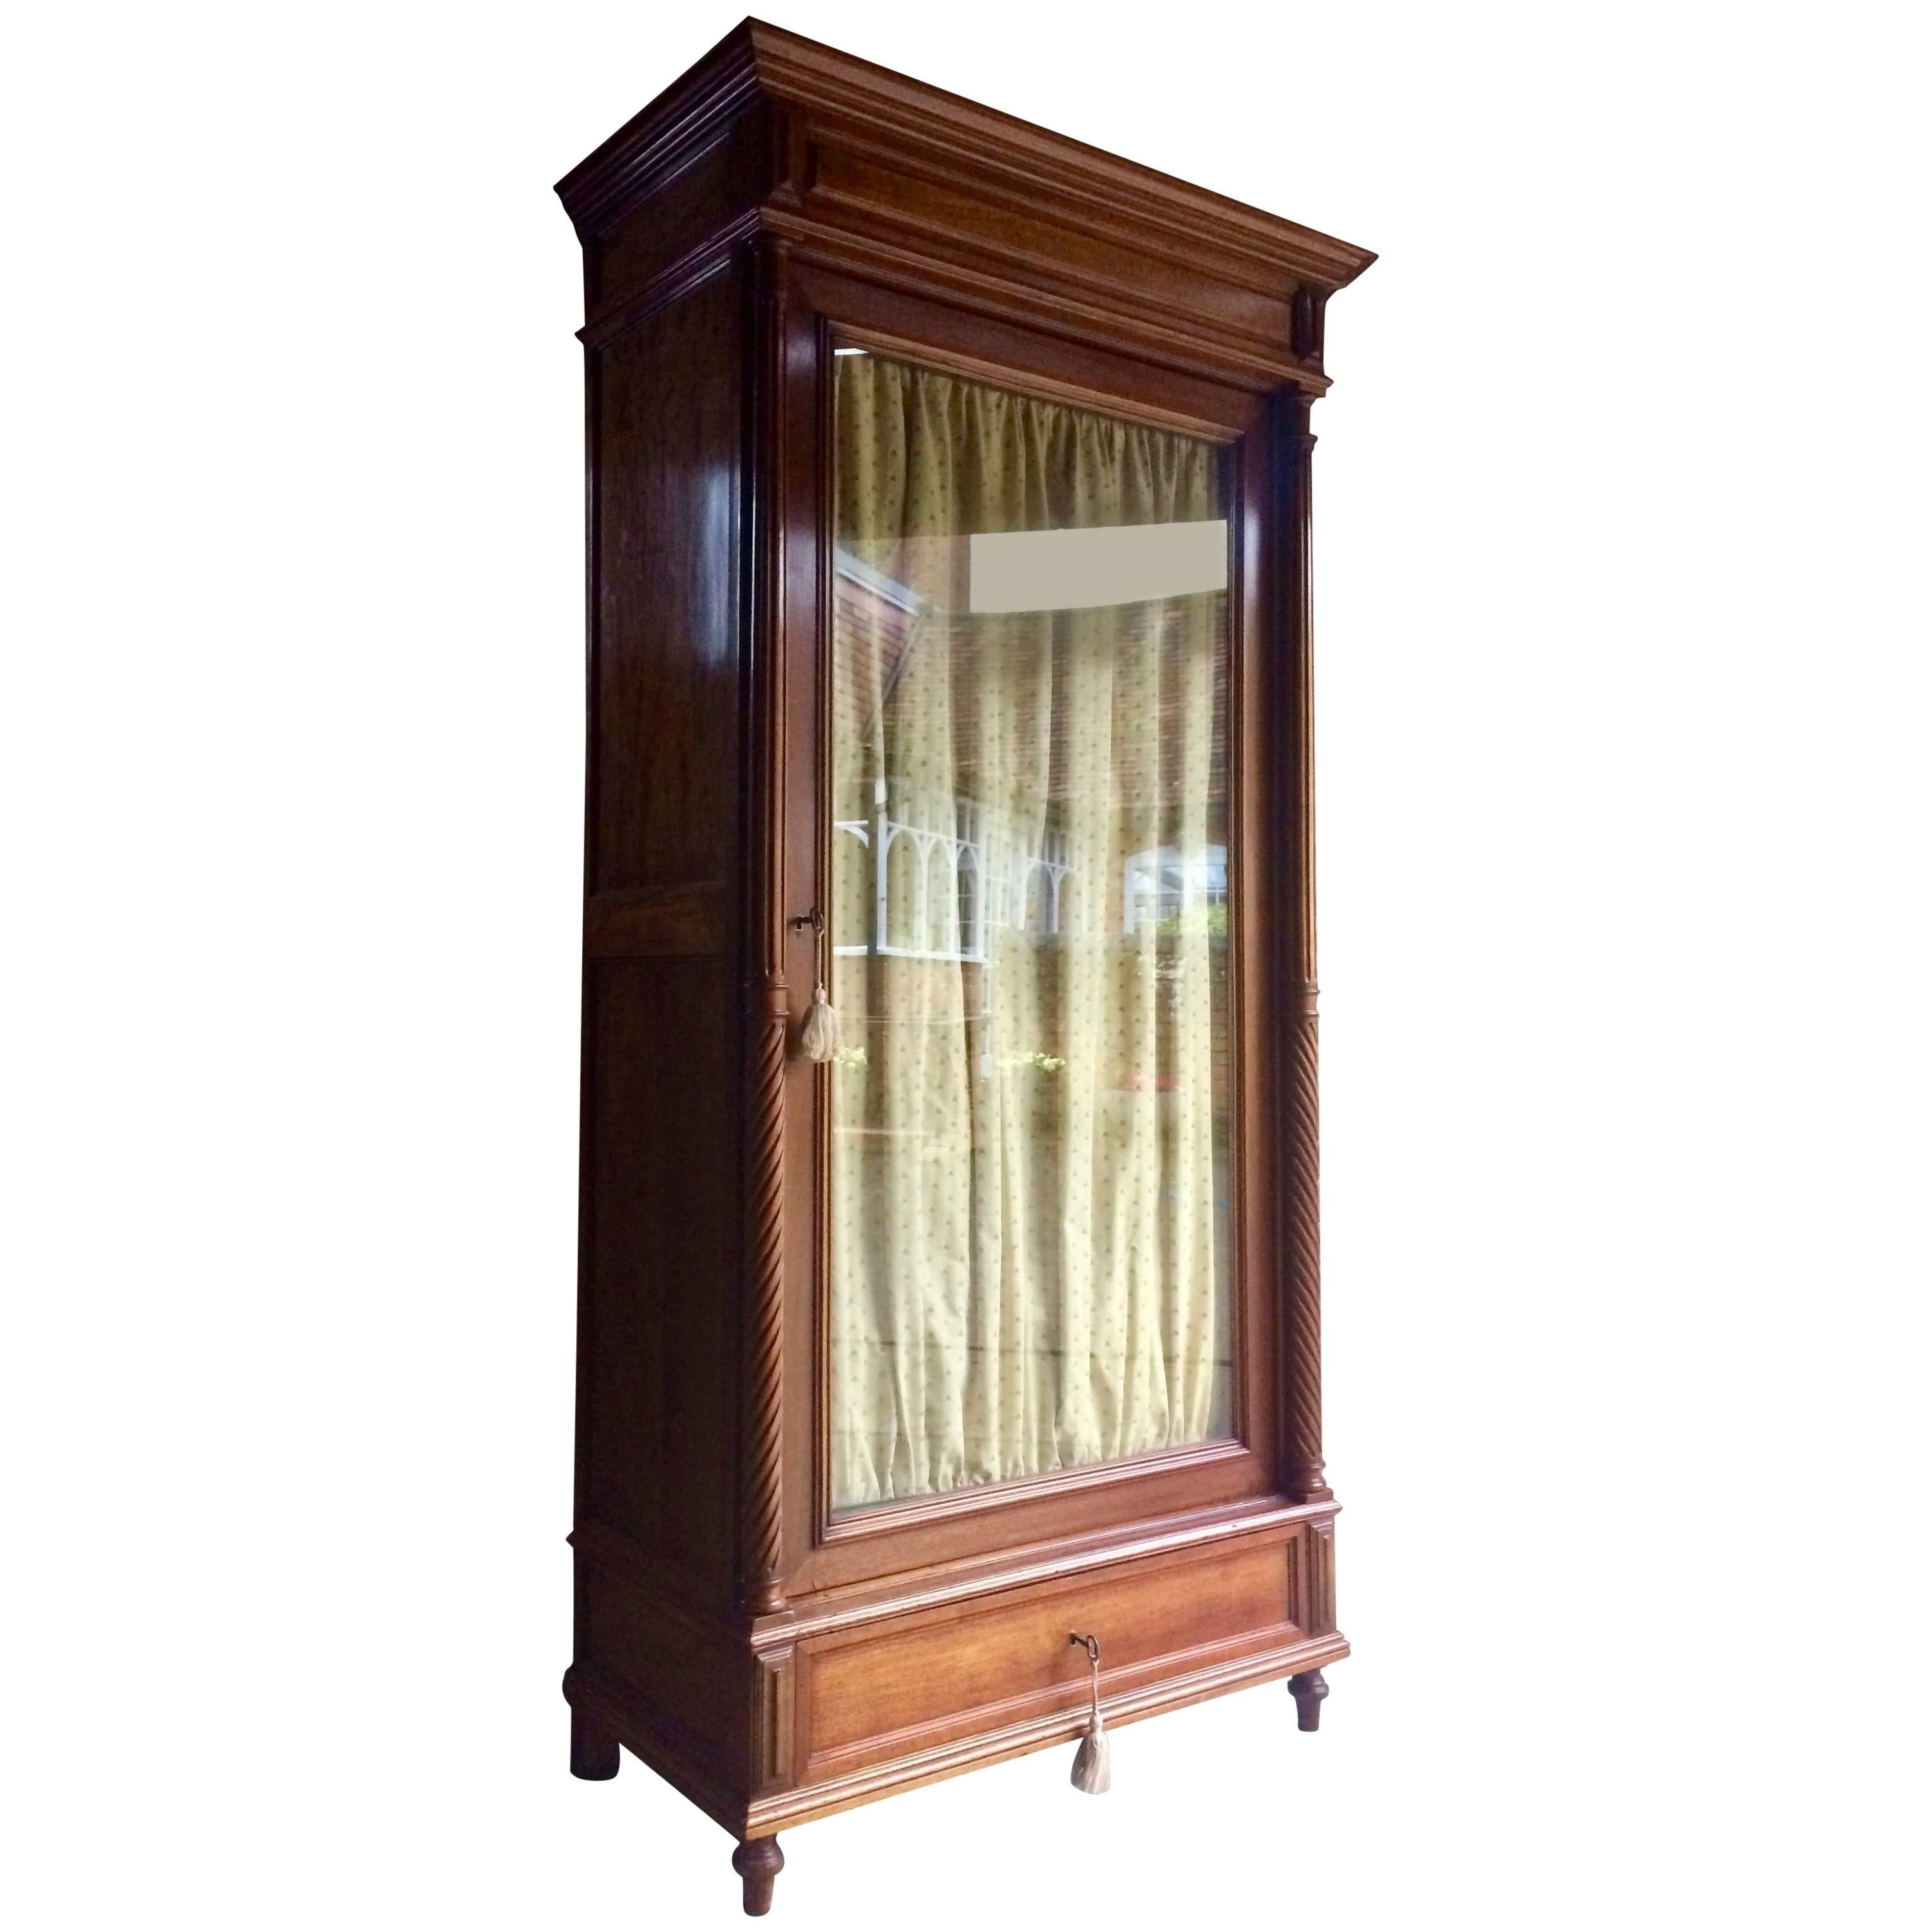 Stunning French Armoire Wardrobe Mahogany Glass Fronted Antique, 19th  Century